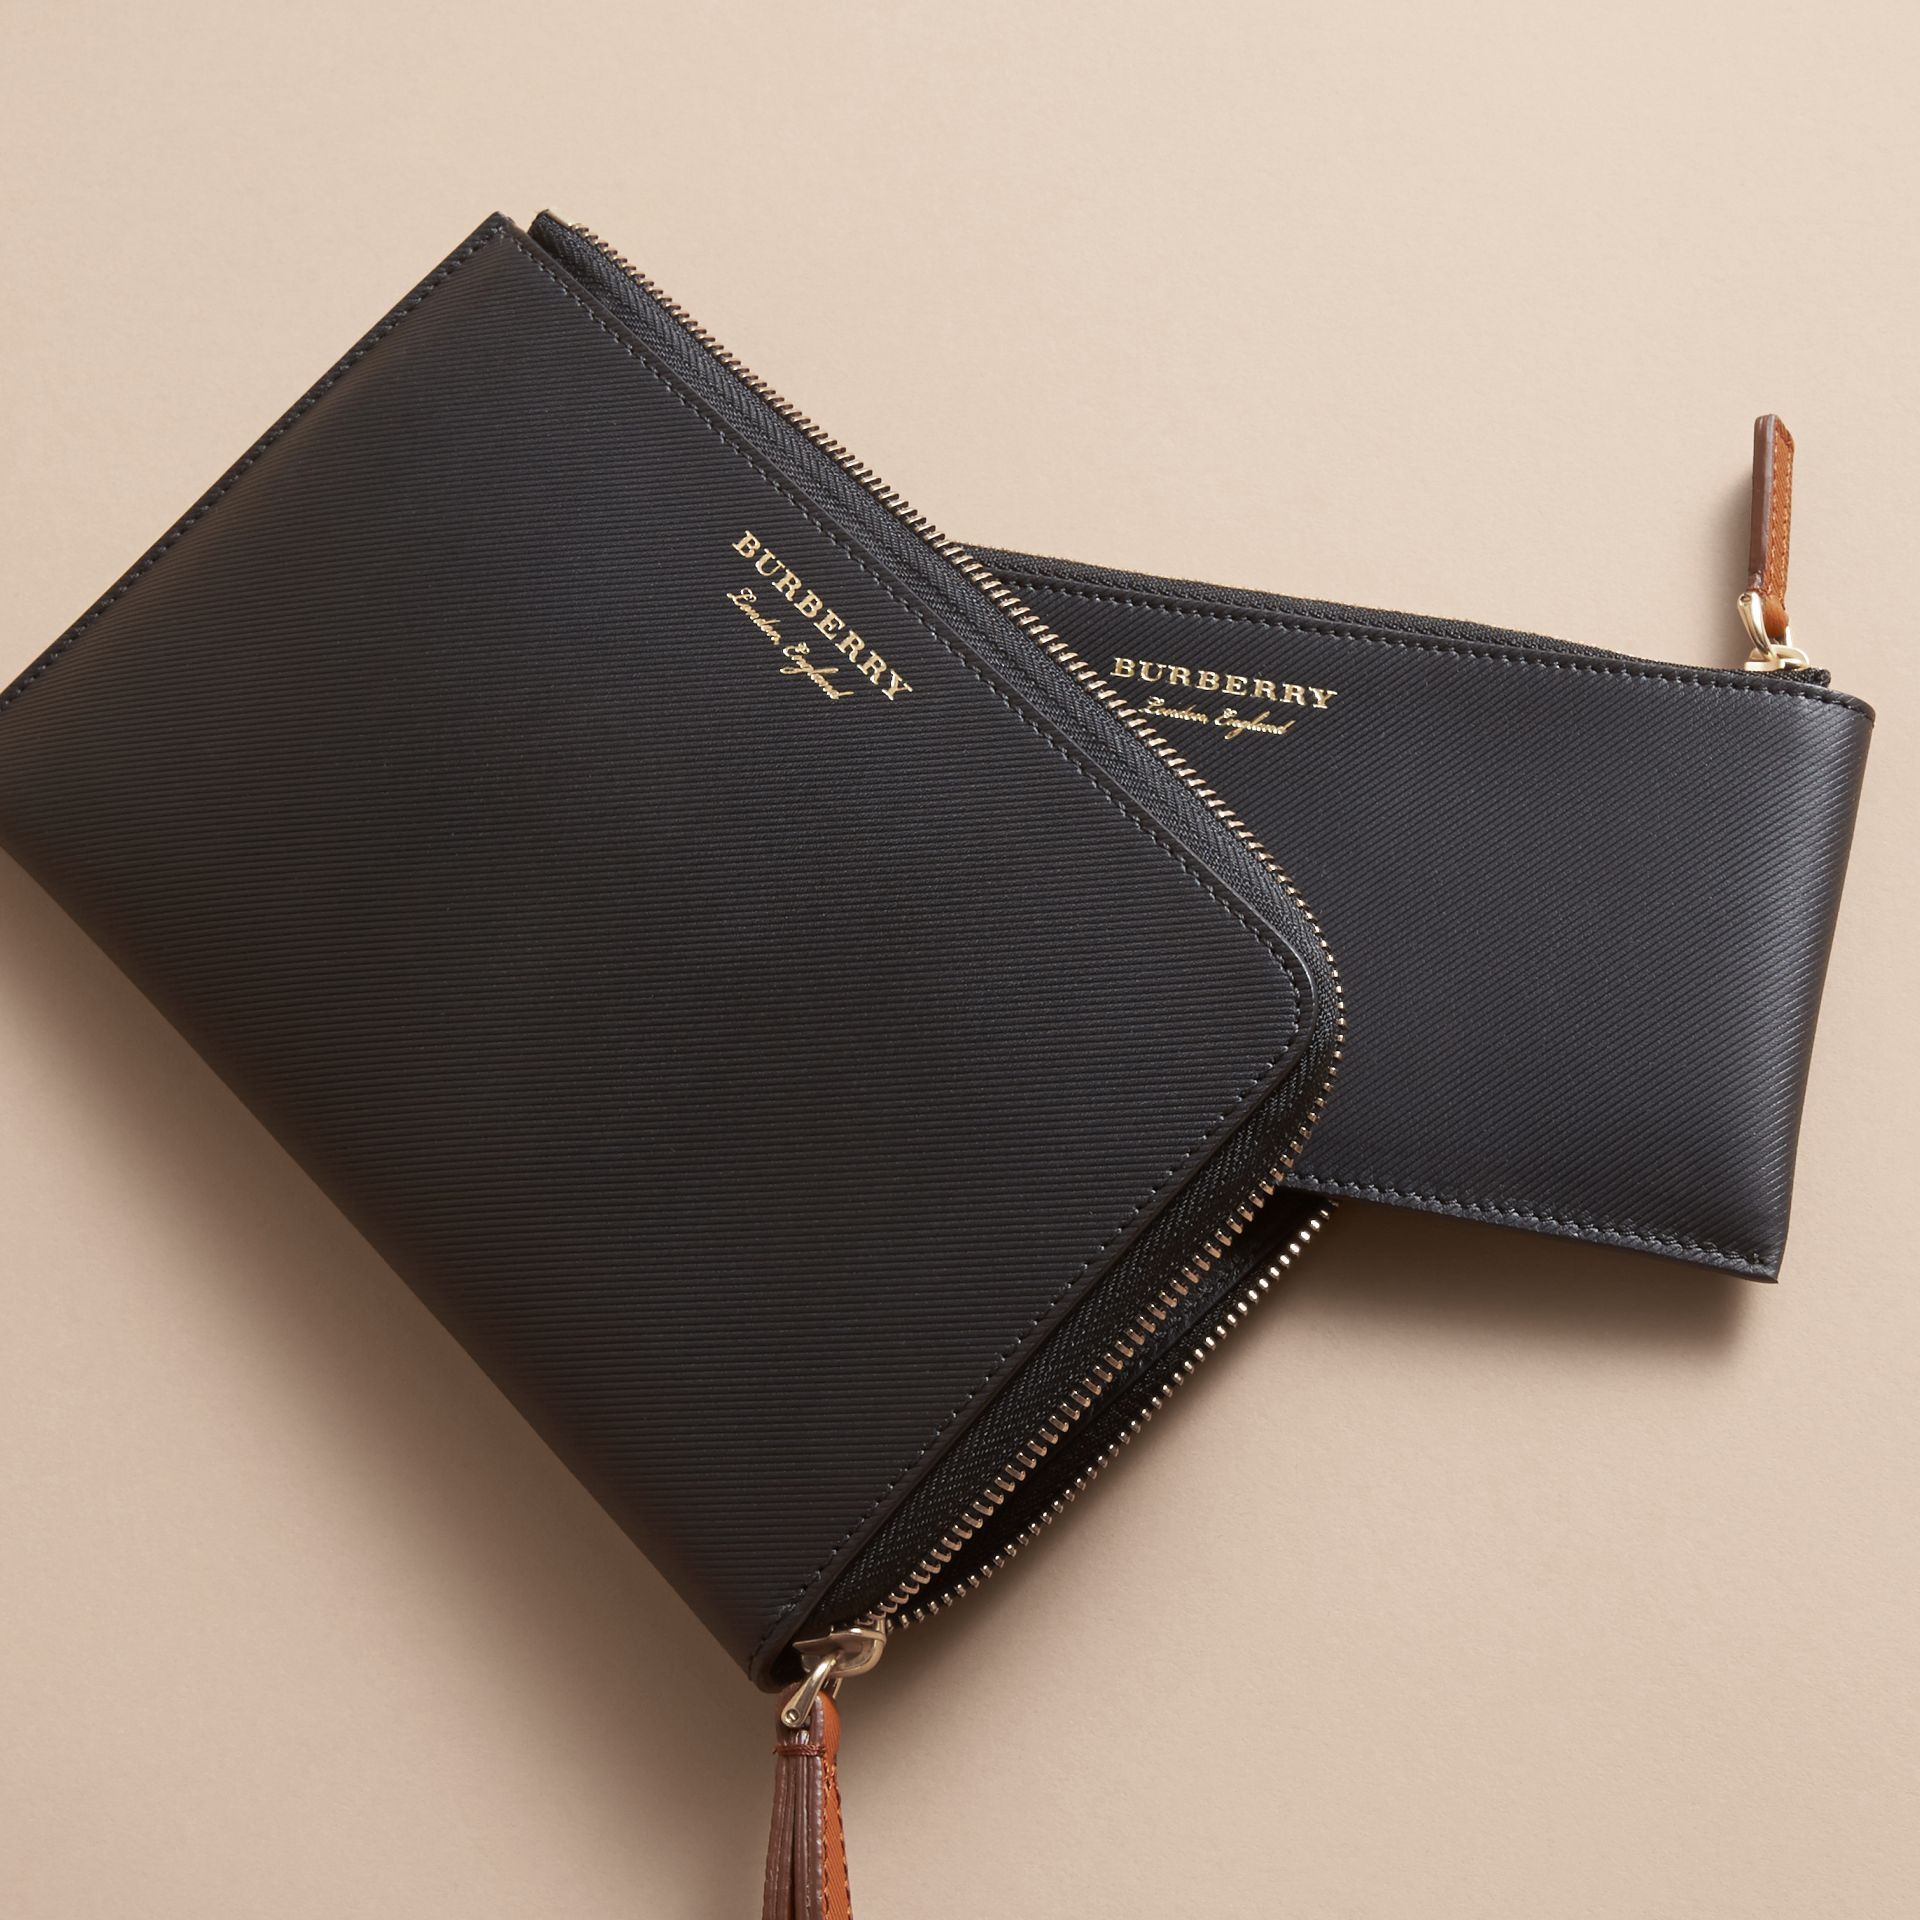 Two-tone Trench Leather Travel Wallet in Black - Men | Burberry - gallery image 4